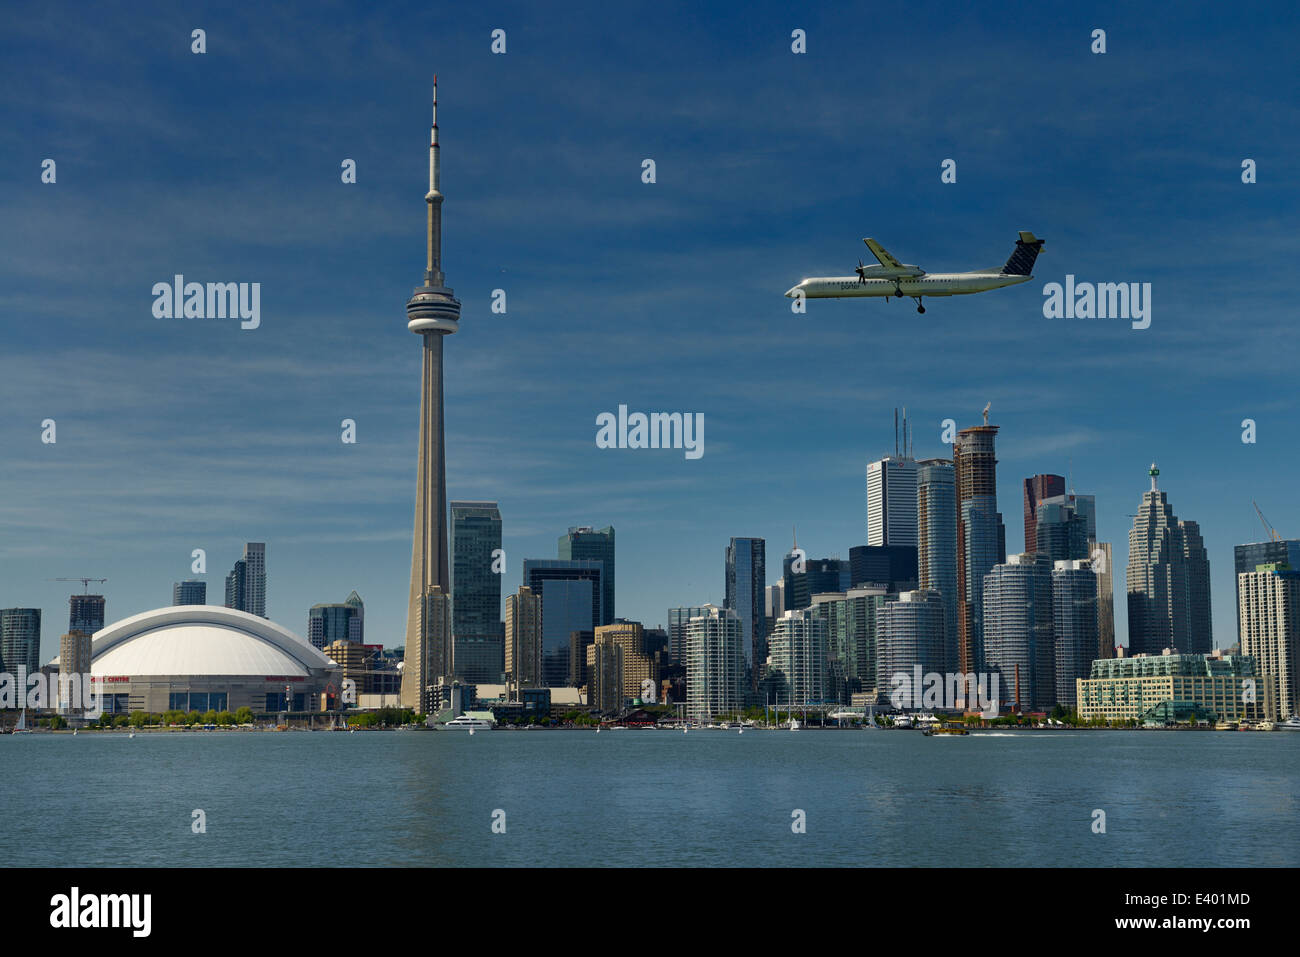 Toronto skyline with Rogers Centre CN Tower condo and financial towers and Porter airplane landing on Island Airport - Stock Image